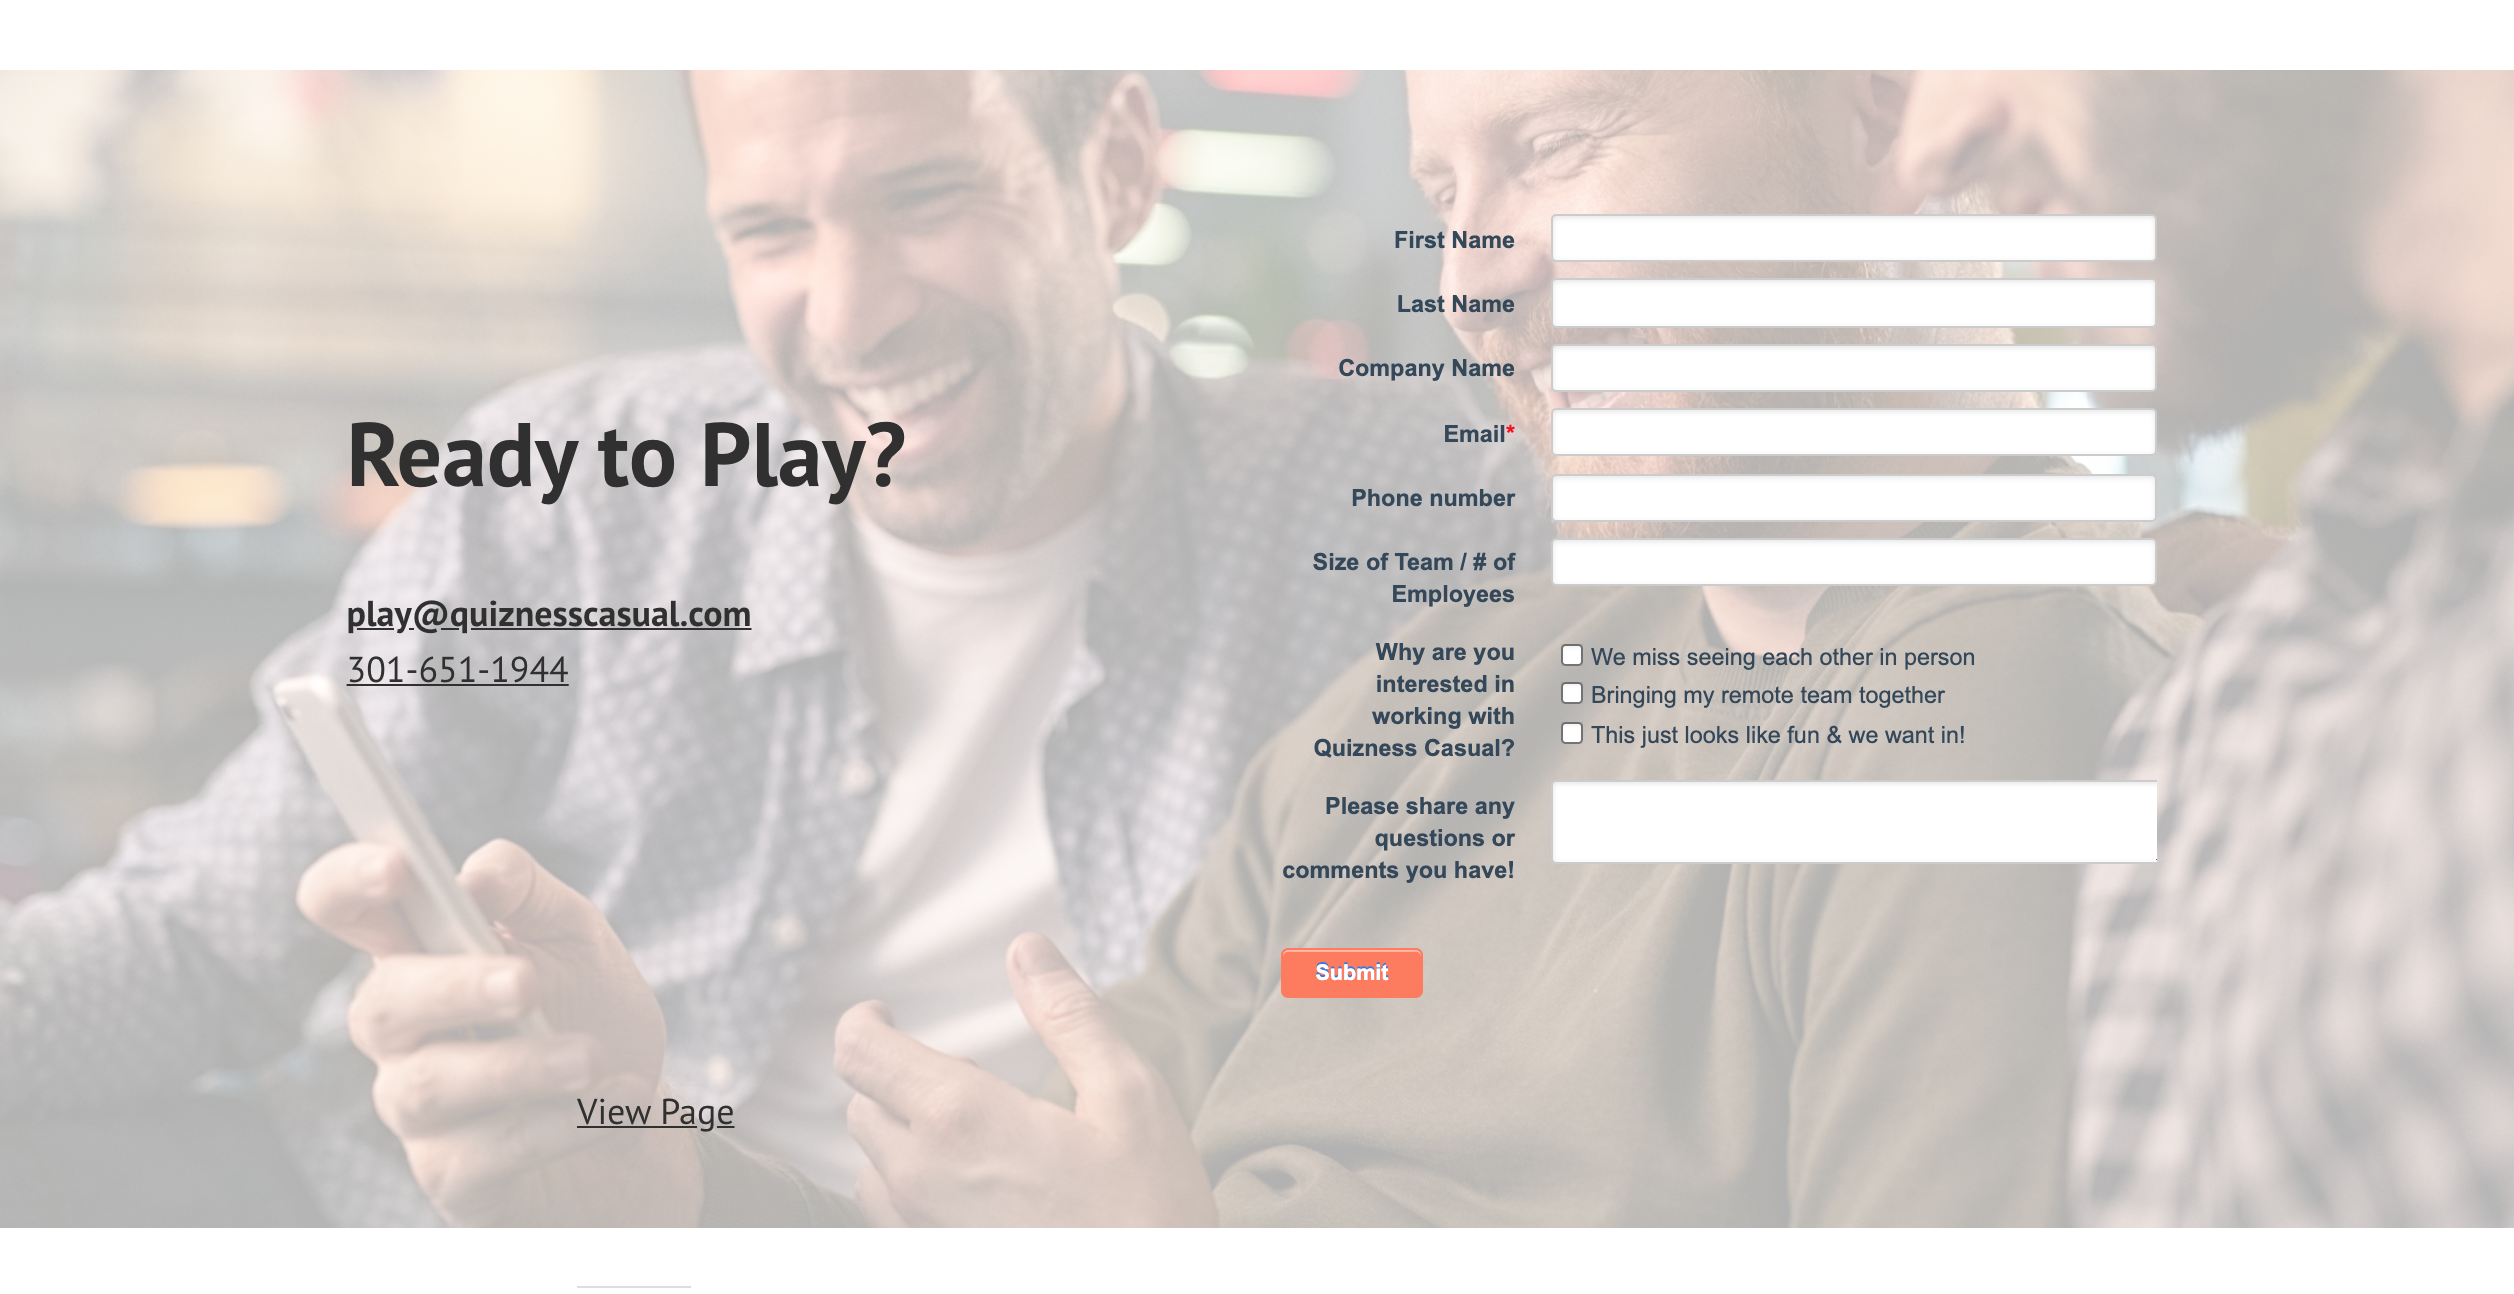 Quizness Casual Contact Page